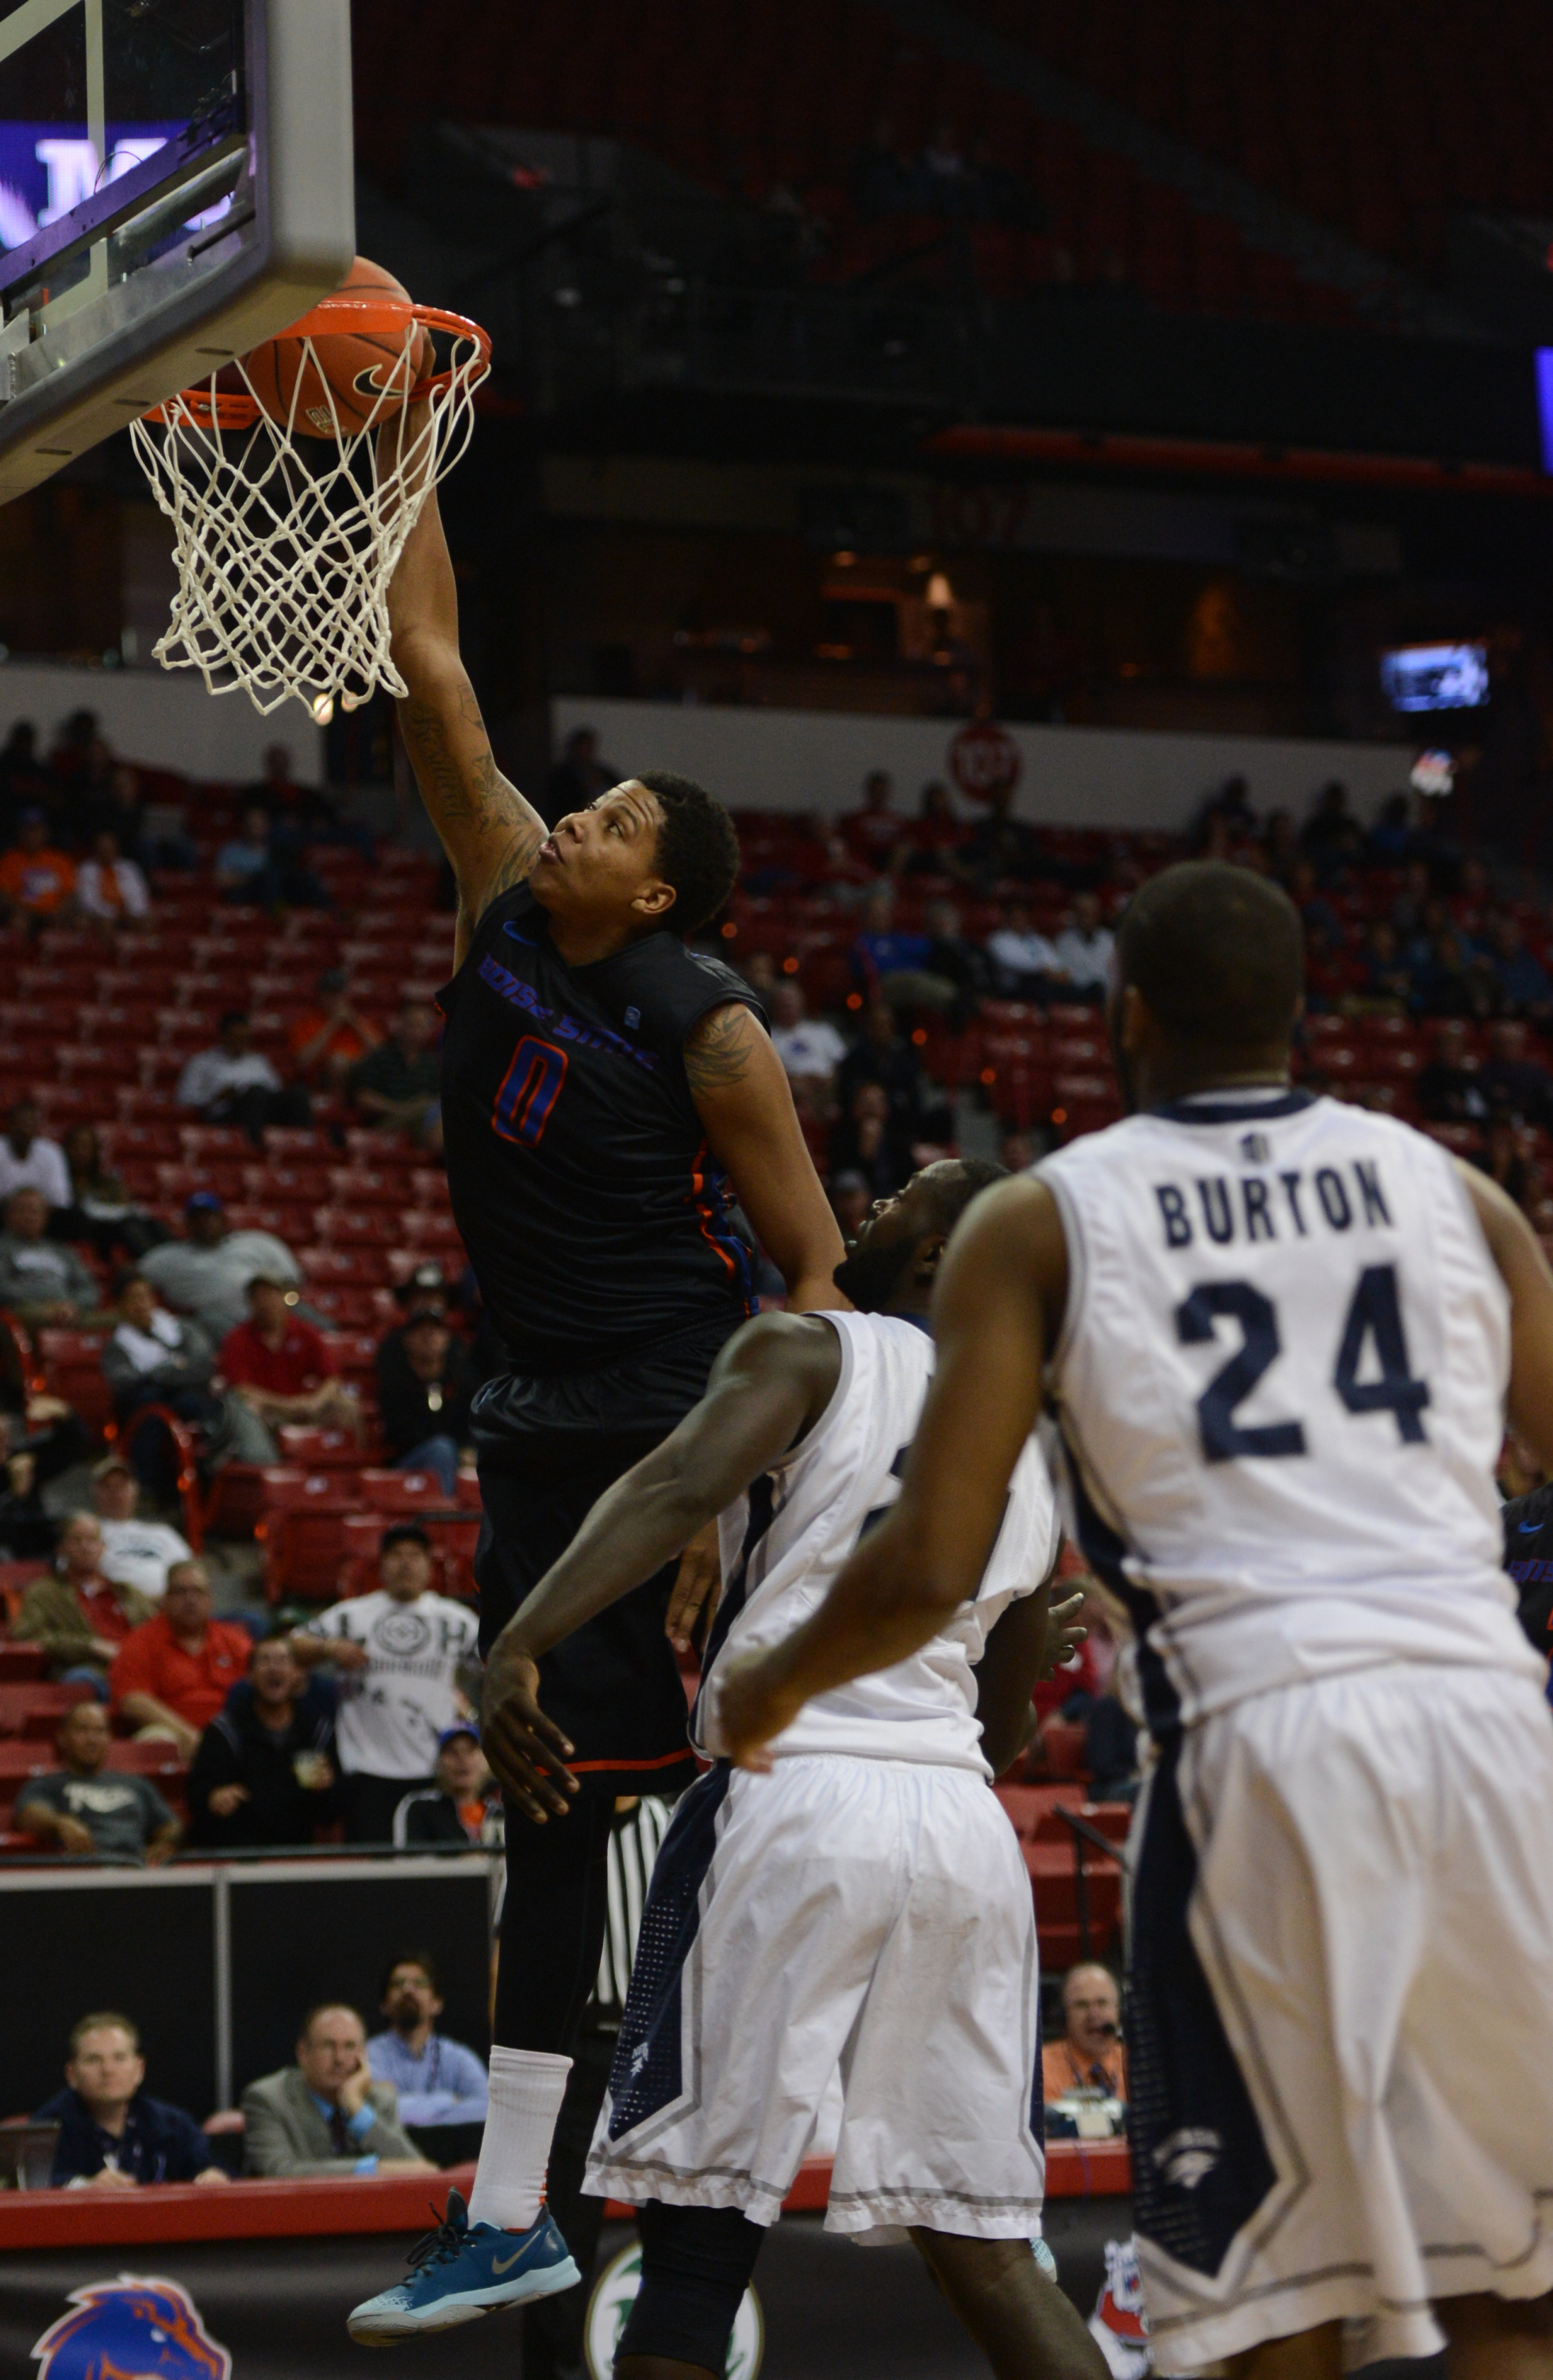 Ryan Watkins notched a double-double in Thursday's win.